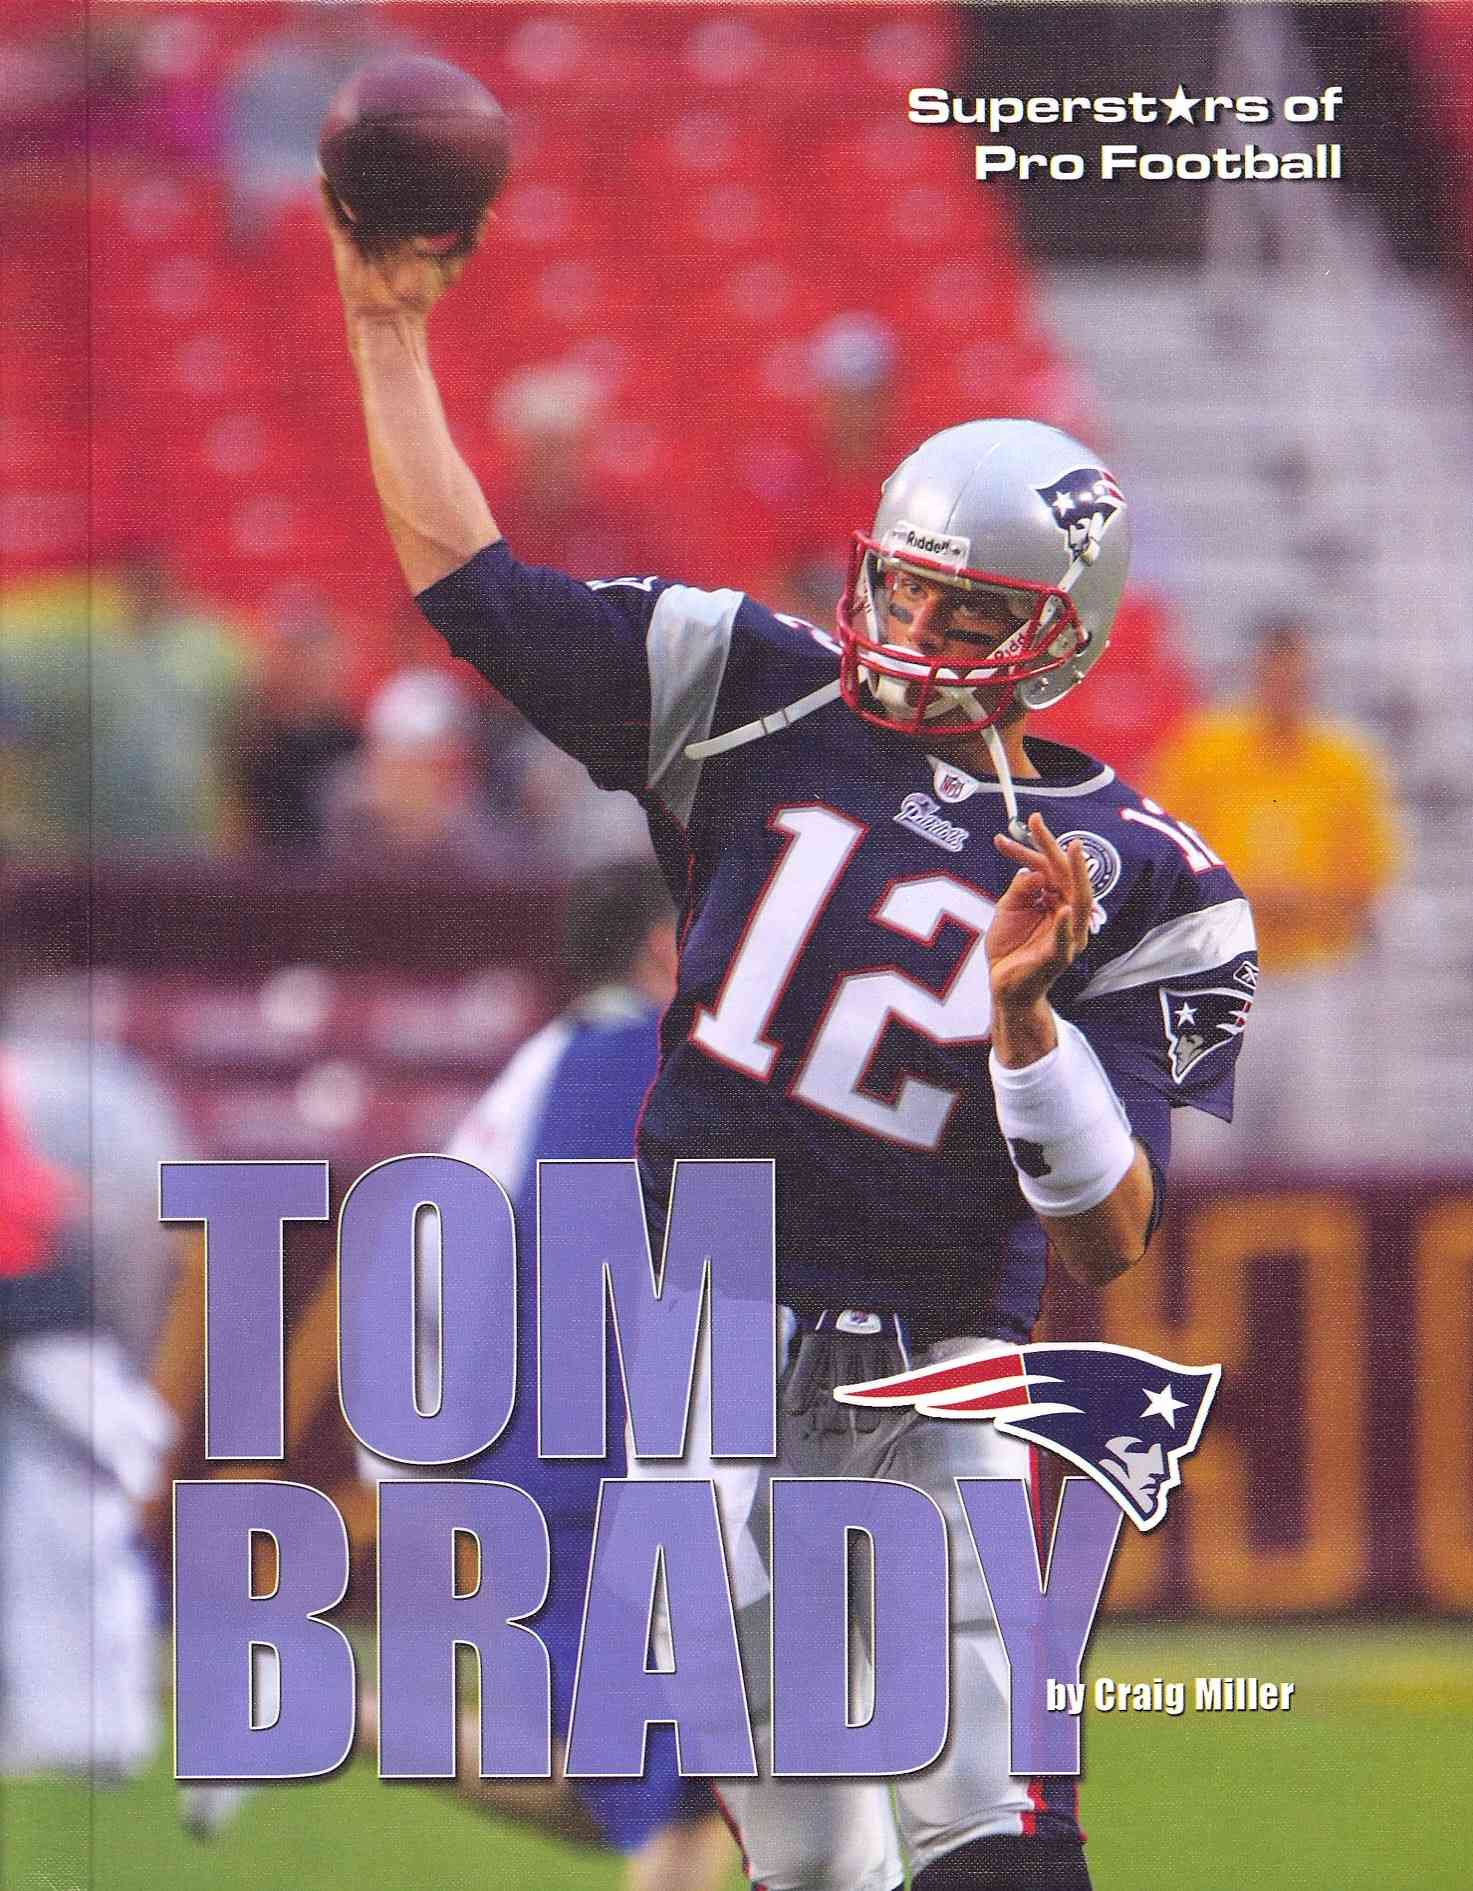 Tom Brady+�+�+�+�+�+�+�+�+�+�+�+�+�+�+�+�+�+�+�+�+� By Miller, Craig